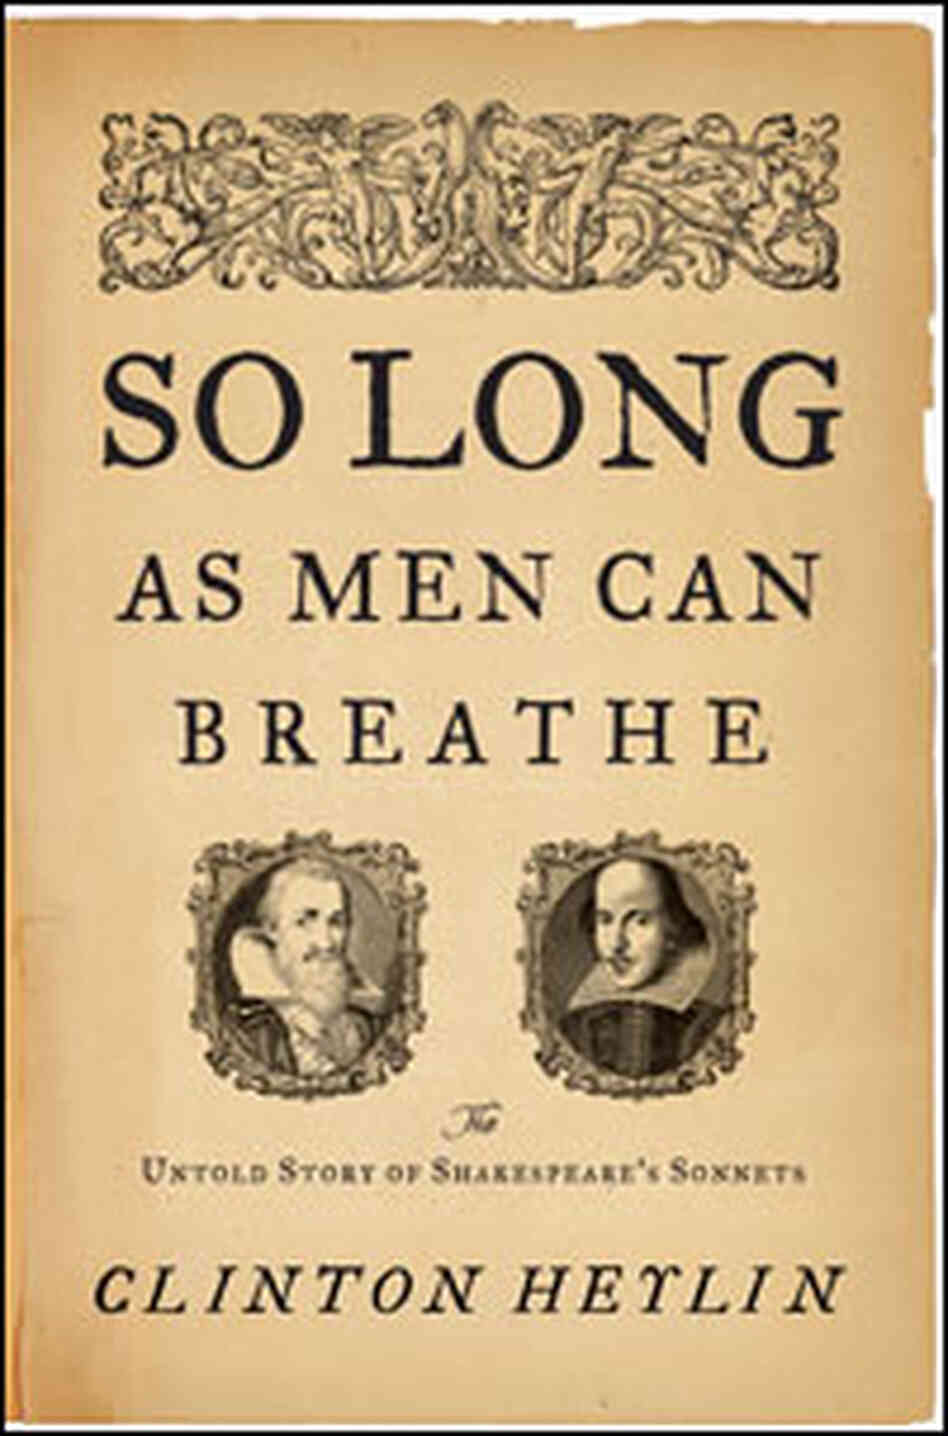 'So Long as Men Can Breathe' cover